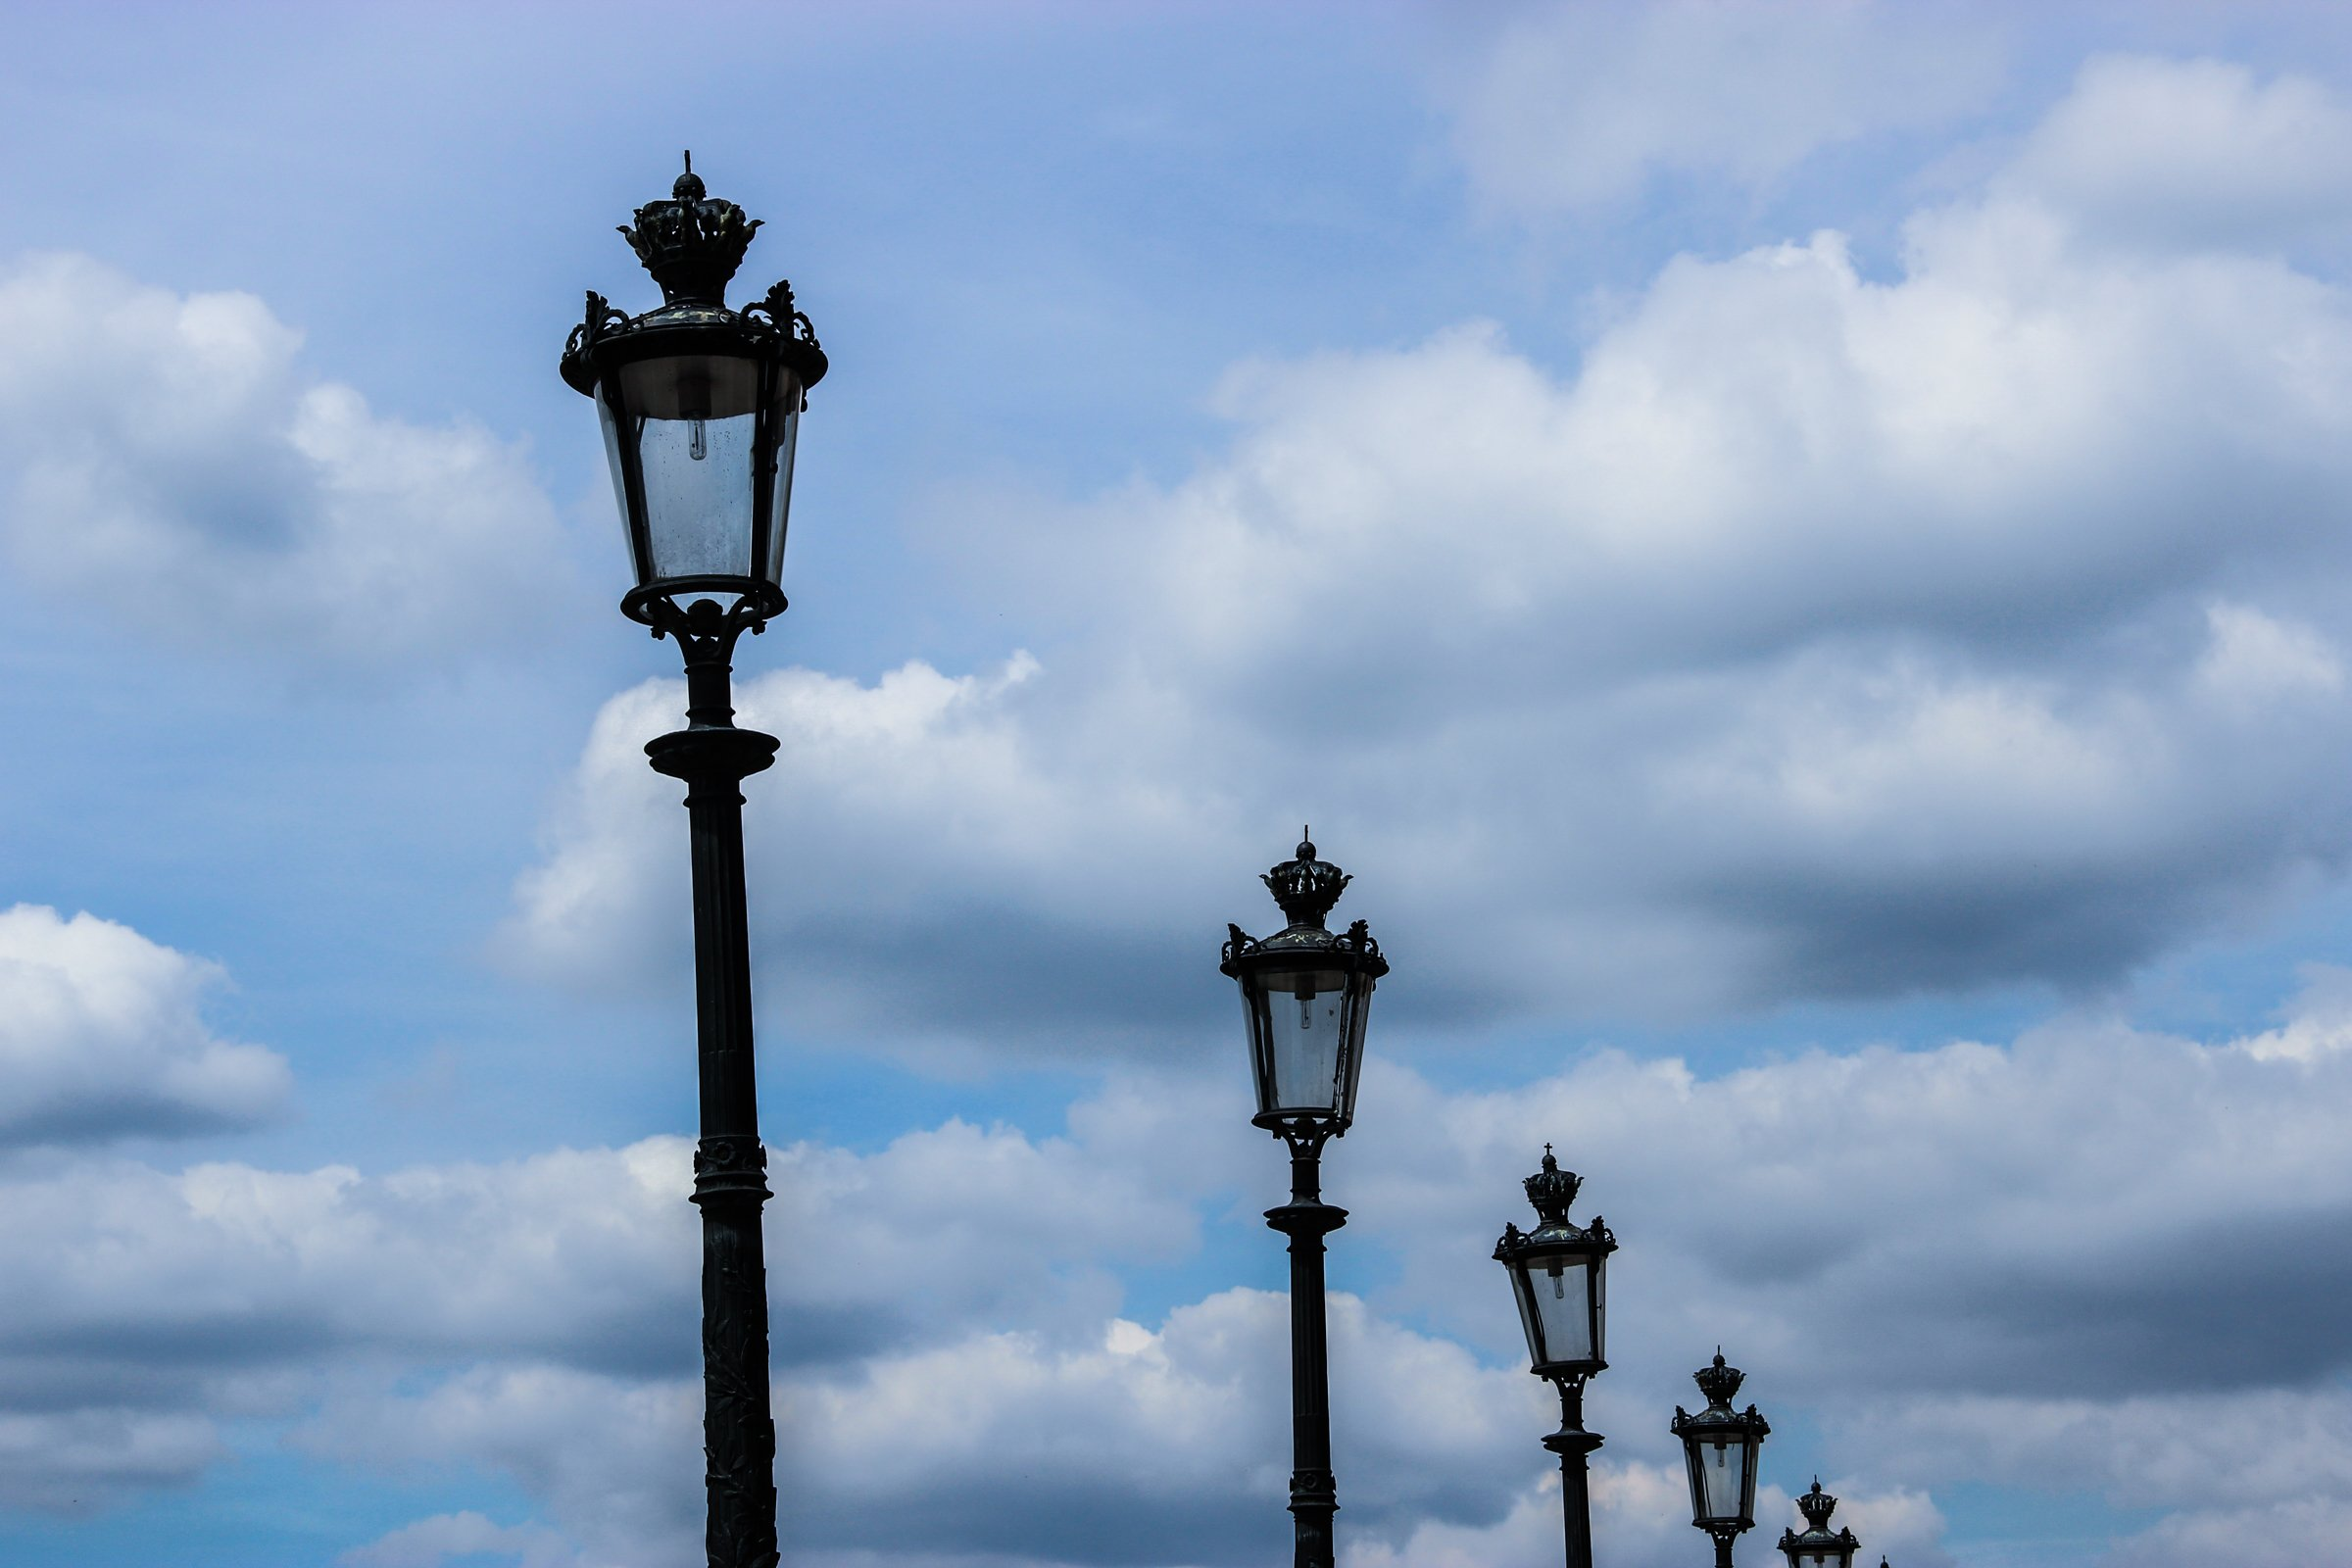 Lamp Posts Under Sky With Clouds